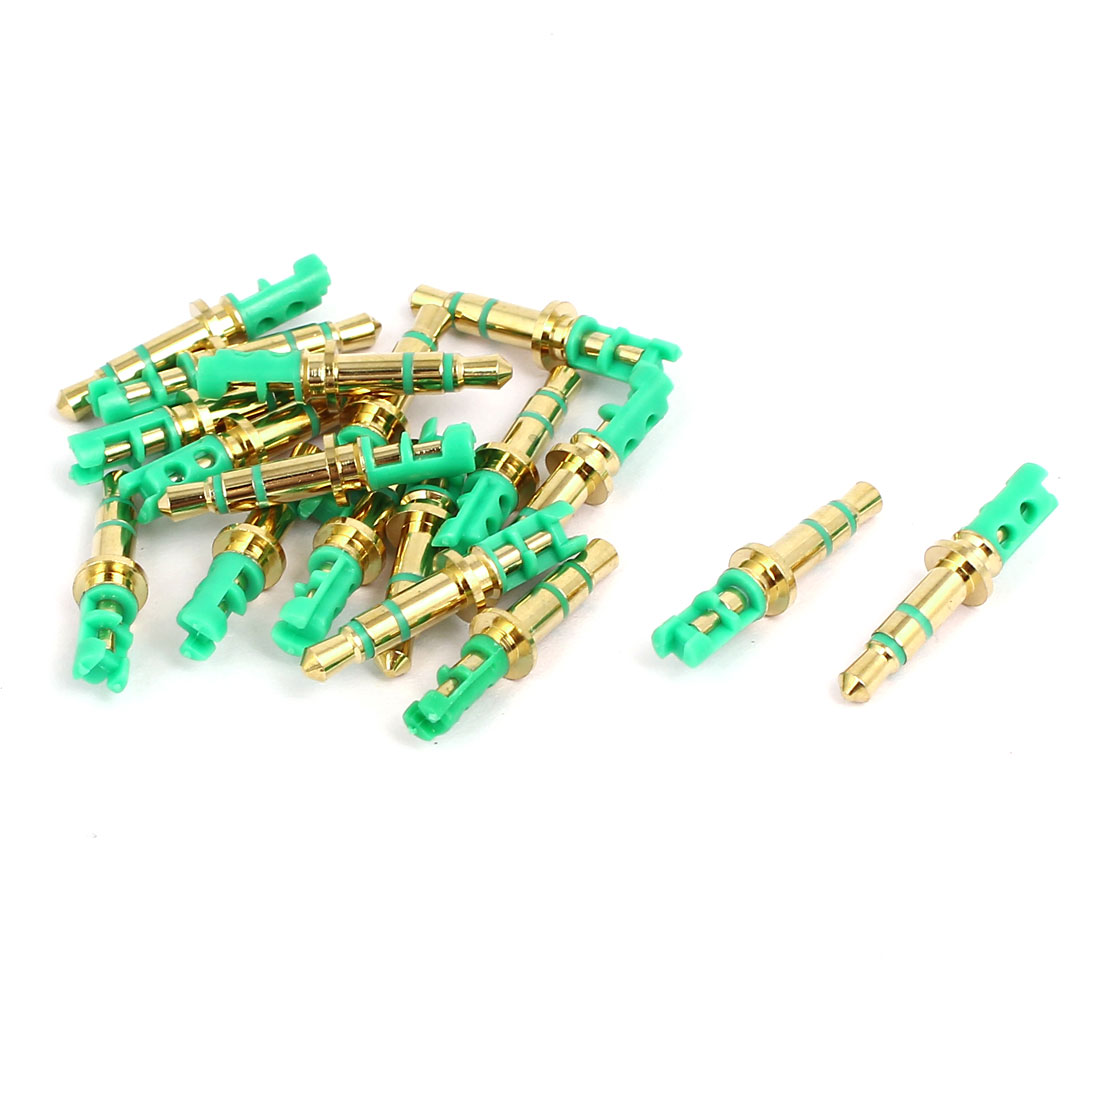 3.5mm Male Earphone Headphone Stereo Audio Jack Gold Tone Green 18pcs